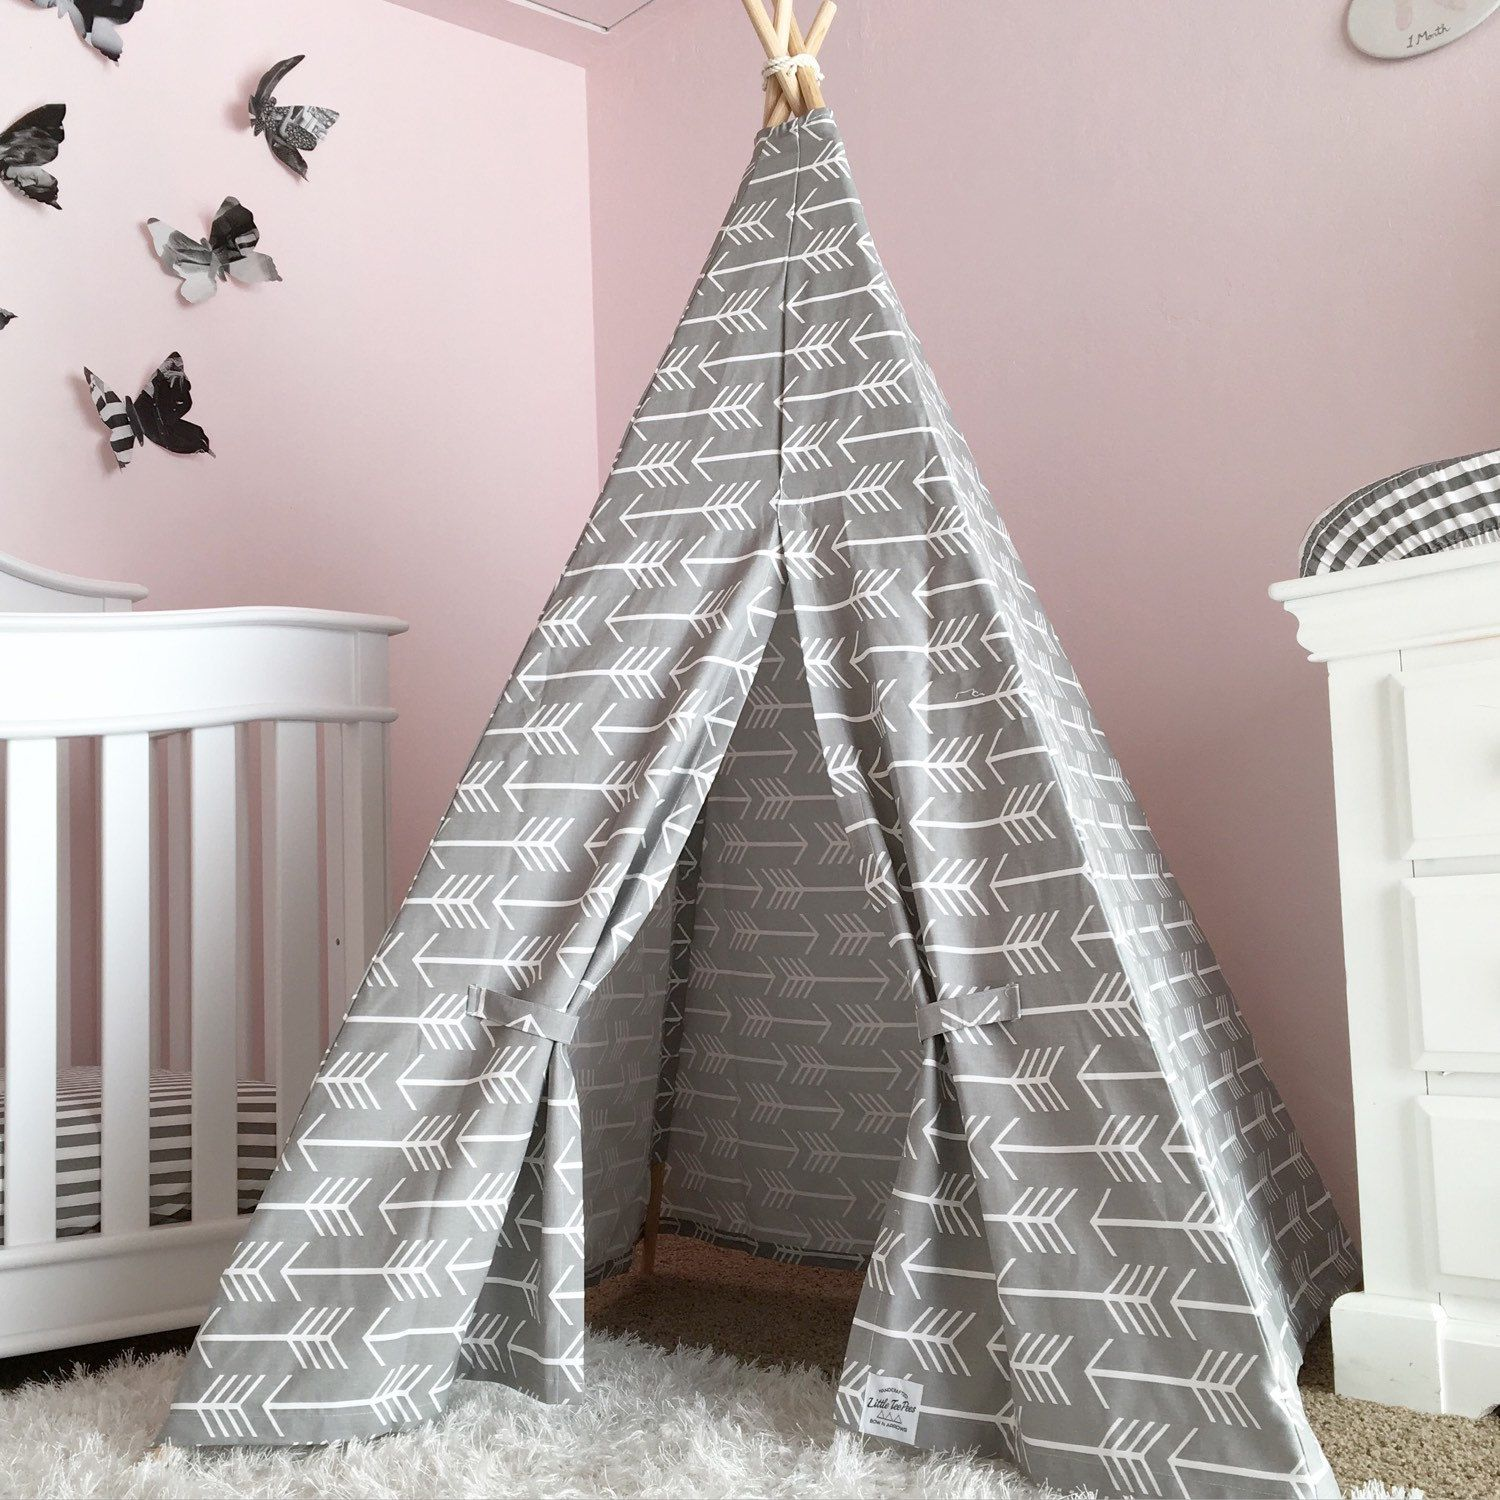 Design Teepee For Kids grey arrow teepee kidsworld pinterest kids play tent in canvas handmade of durable cotton and includes the wooden poles this makes the